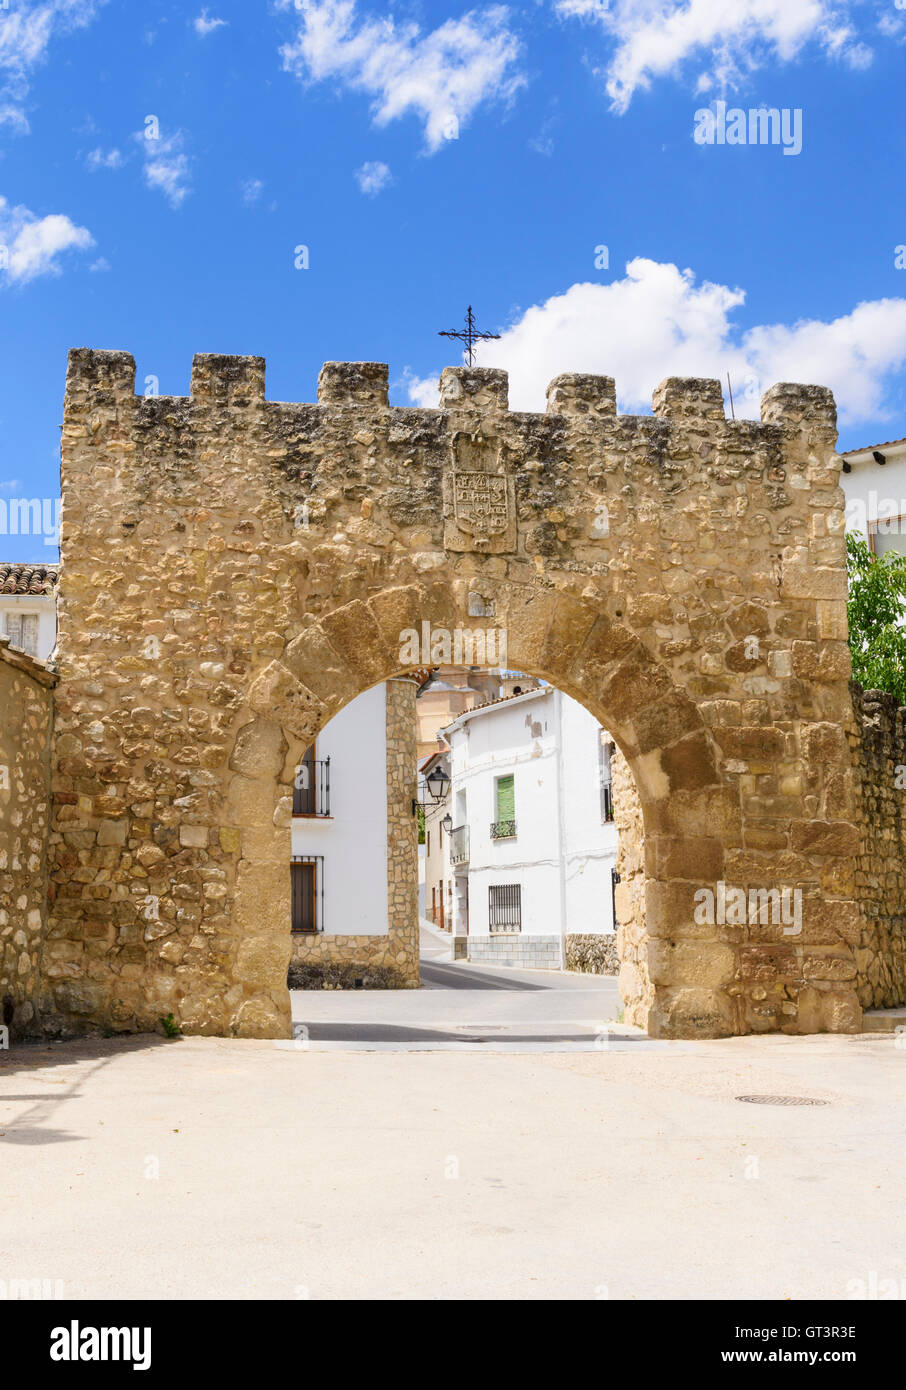 The Puerta del Agua, the entrance gate into the town of Ucles, Spain - Stock Image